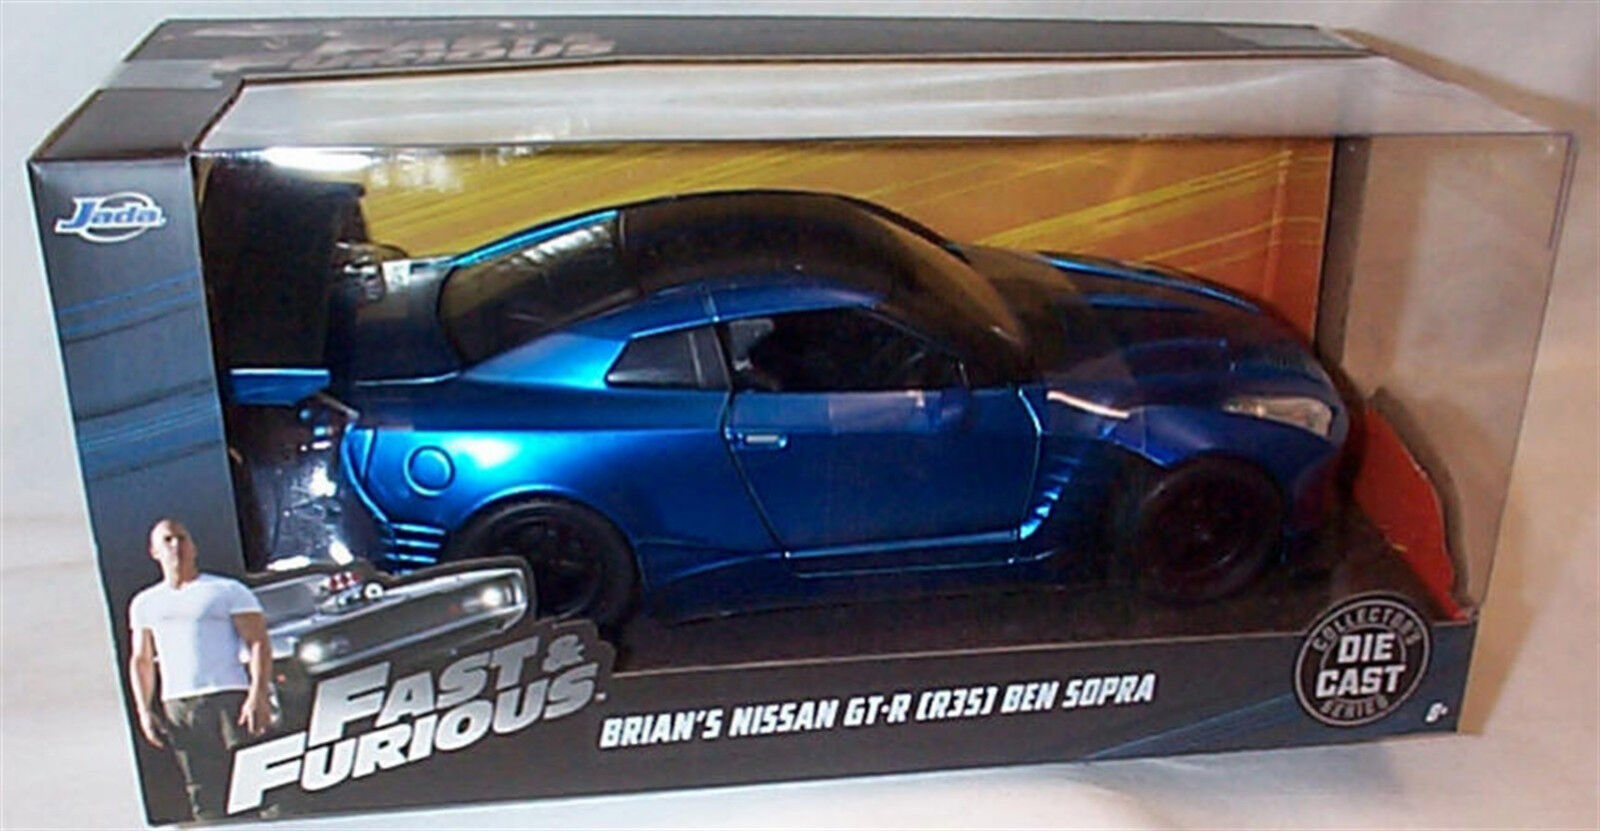 FAST & FURIOUS Brians Nissan GT-R Ben Sopra 1 24 SCALE DIECAST OPENING FEATURES